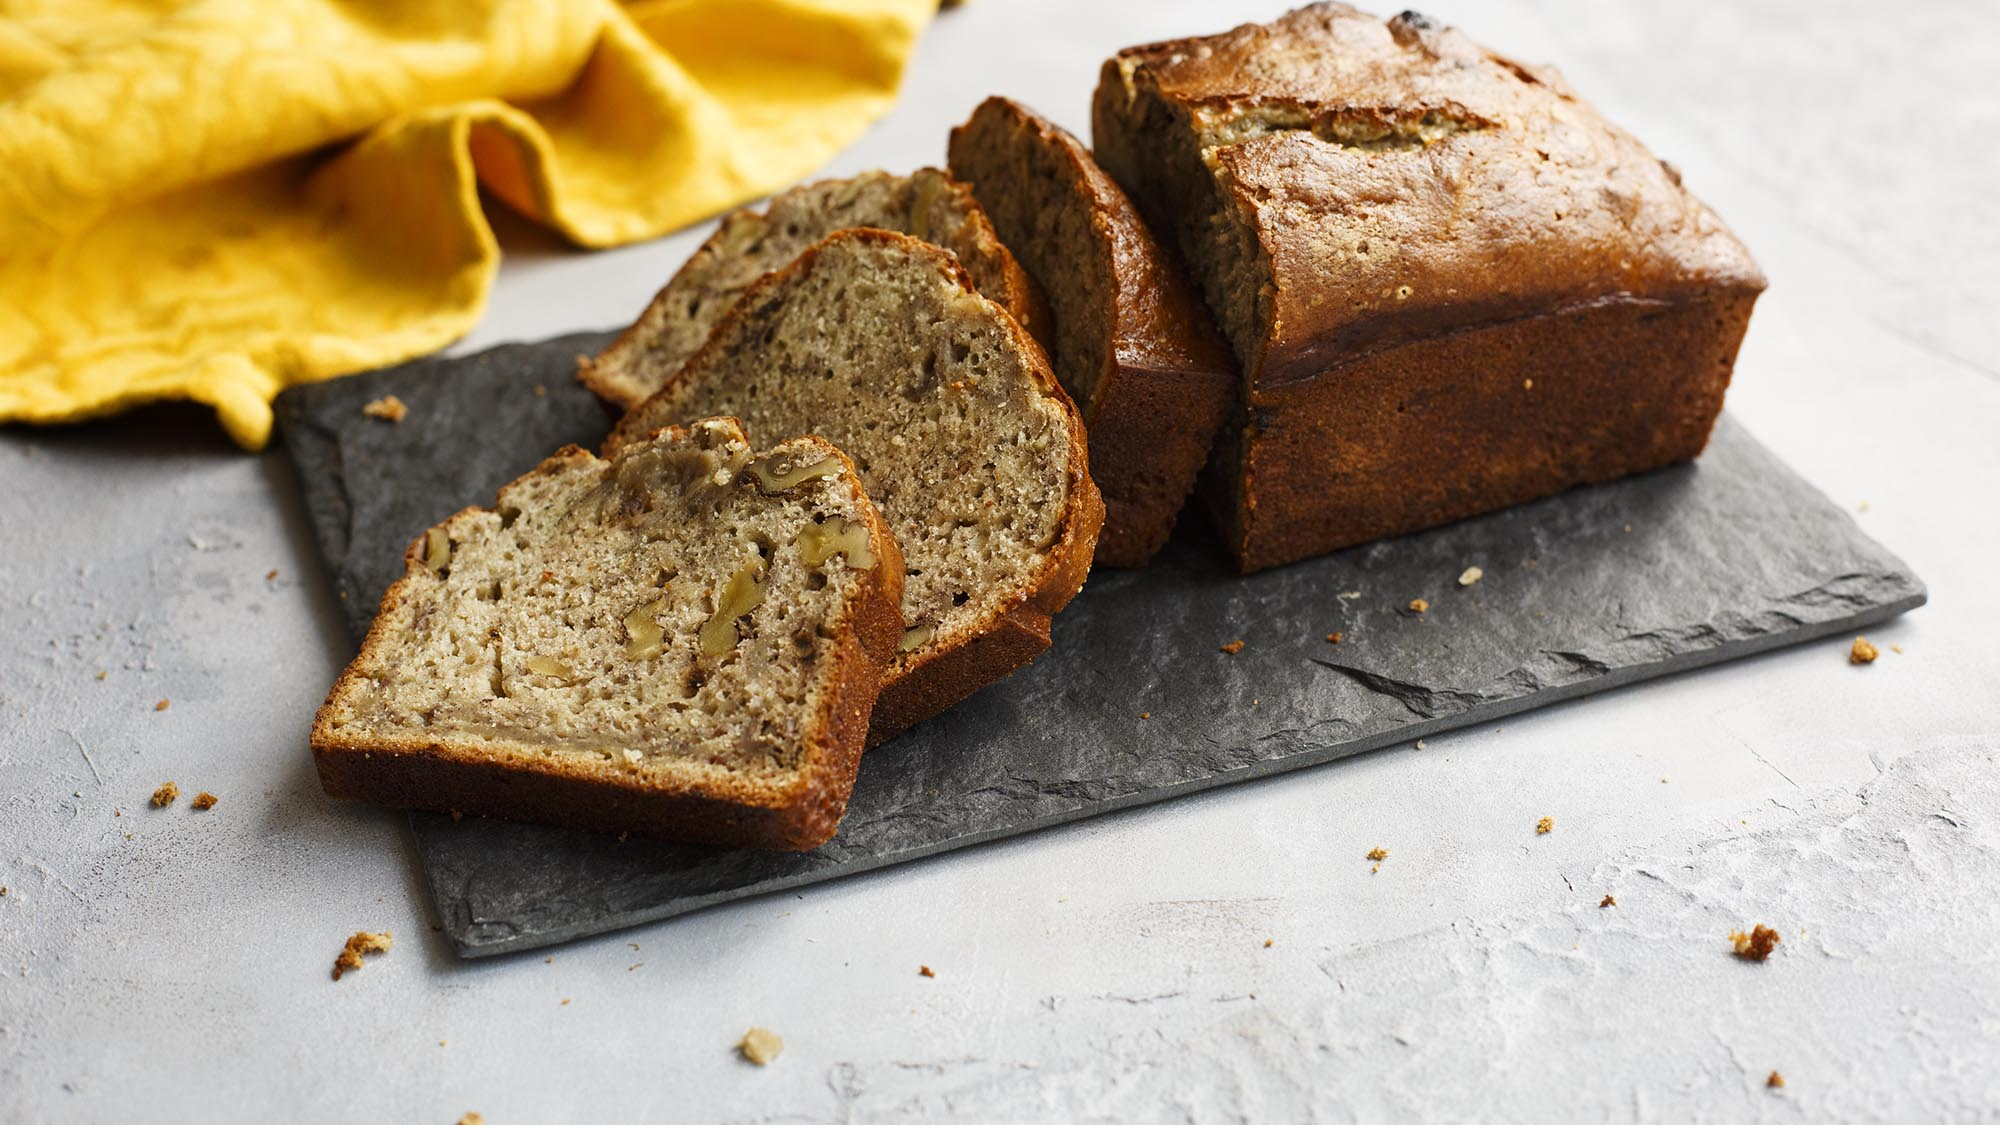 coconut_banana_bread_2000x1125.jpg